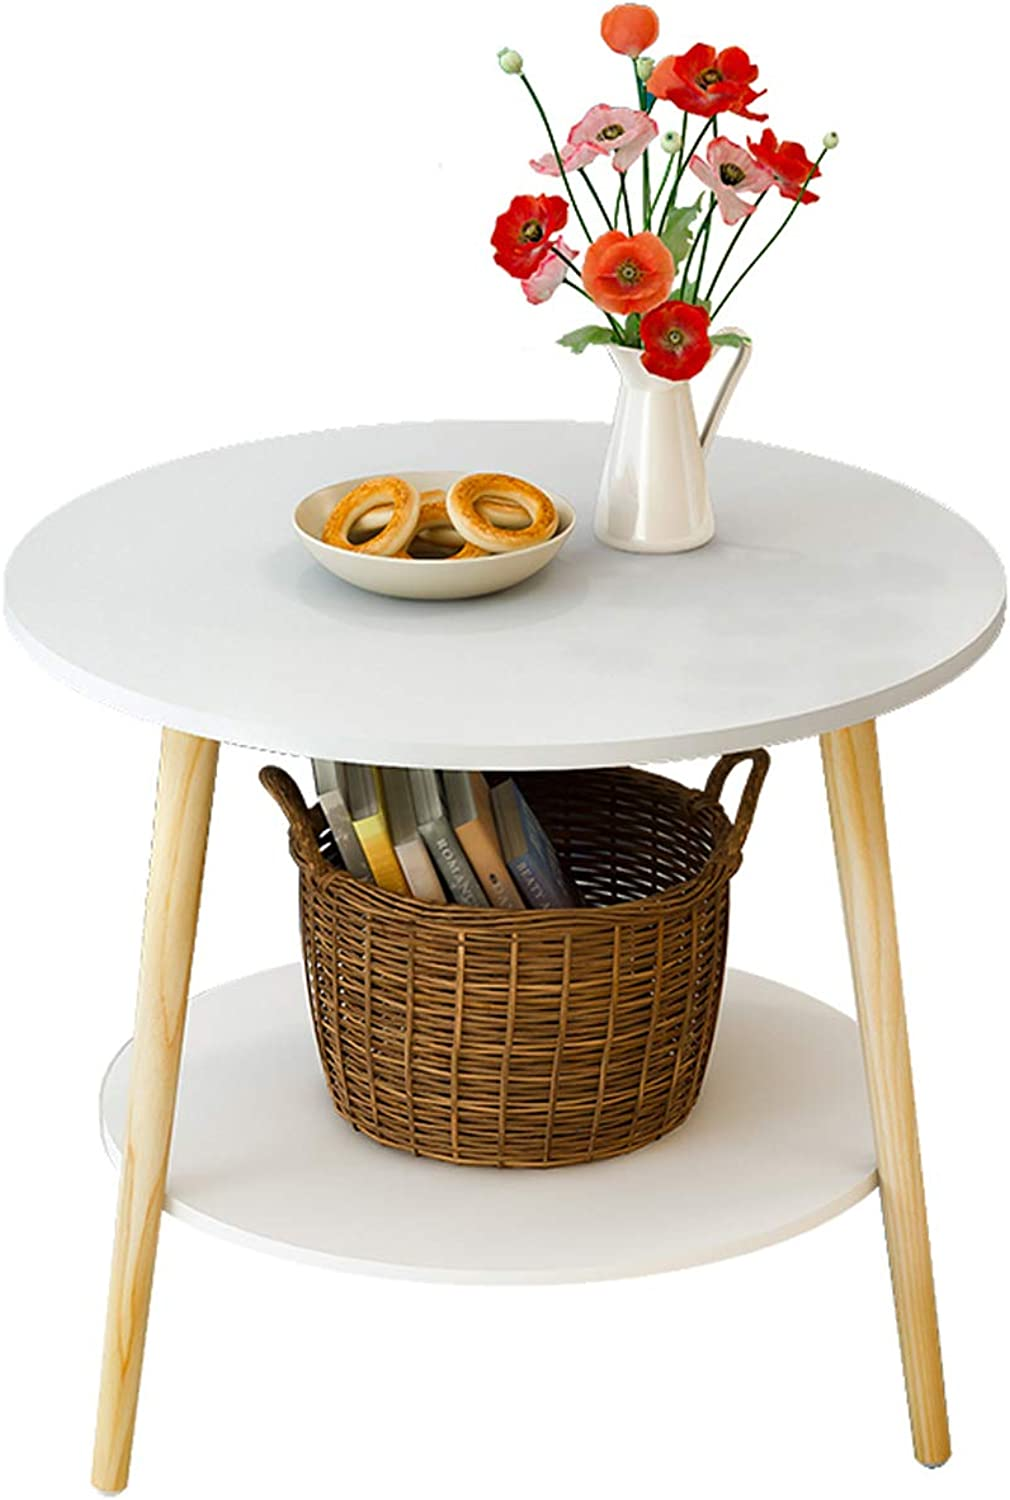 Modern Small Round Table, Folding Coffee Table, Sofa Side Cabinet, Bedside Table